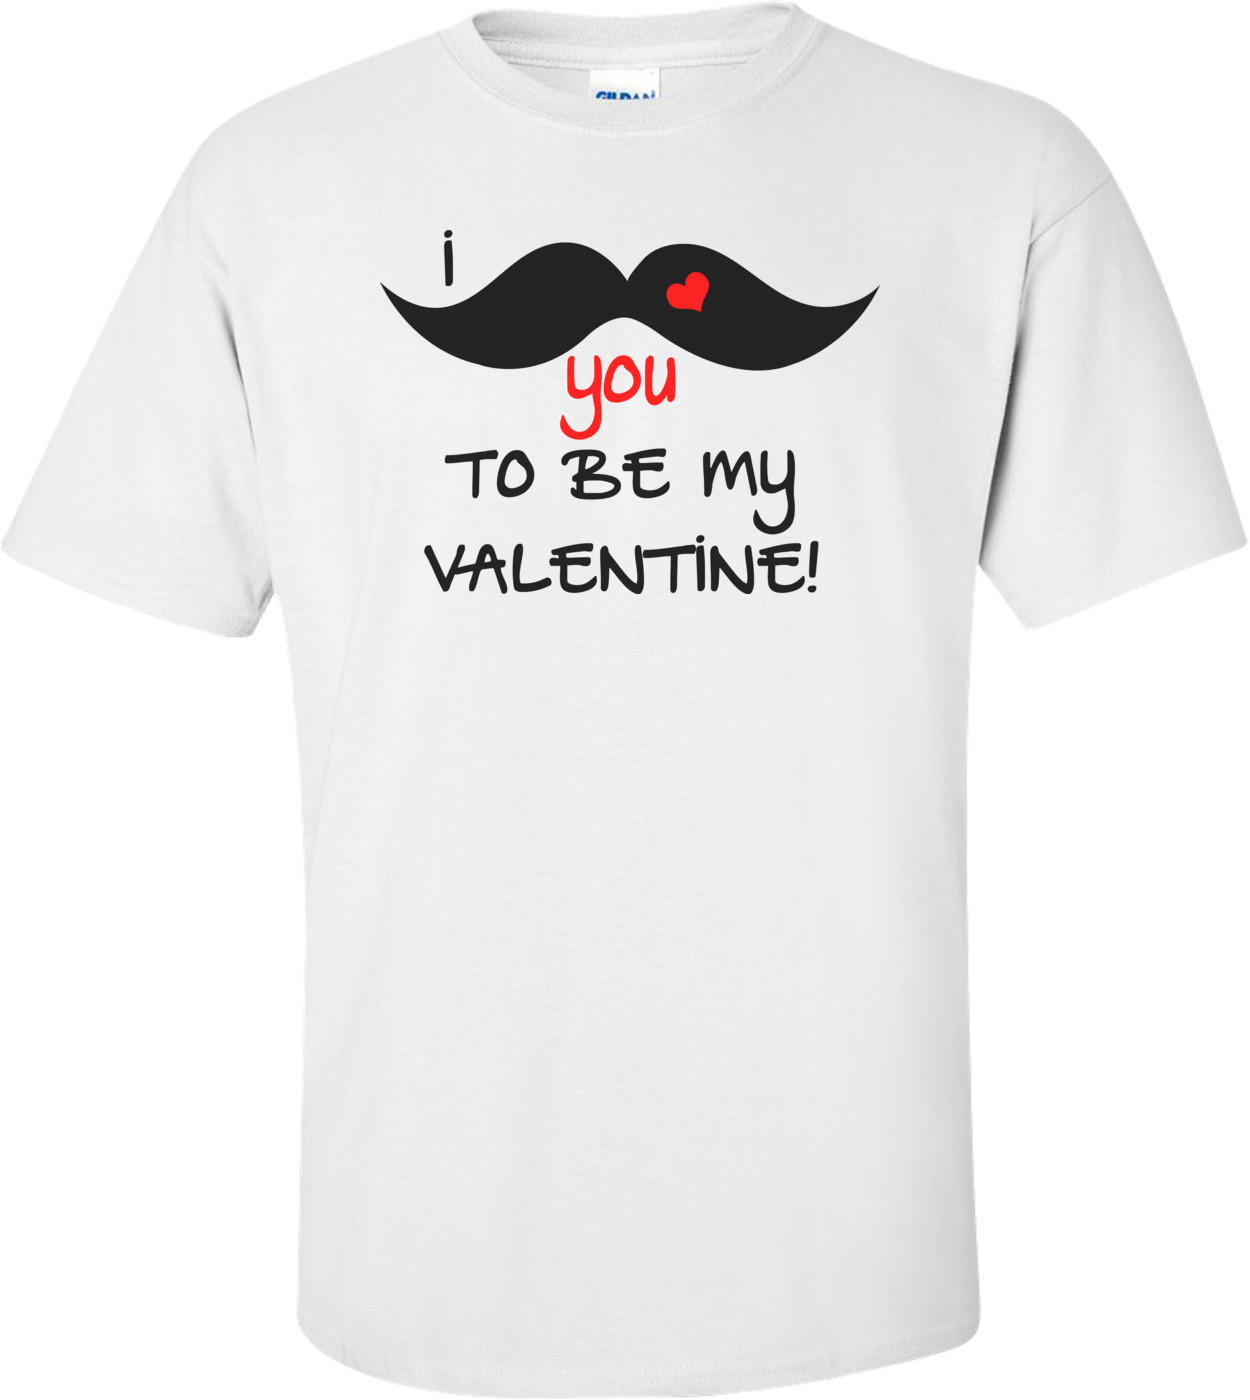 I Mustache You To Be My Valentine! Funny Valentine's Day Shirt